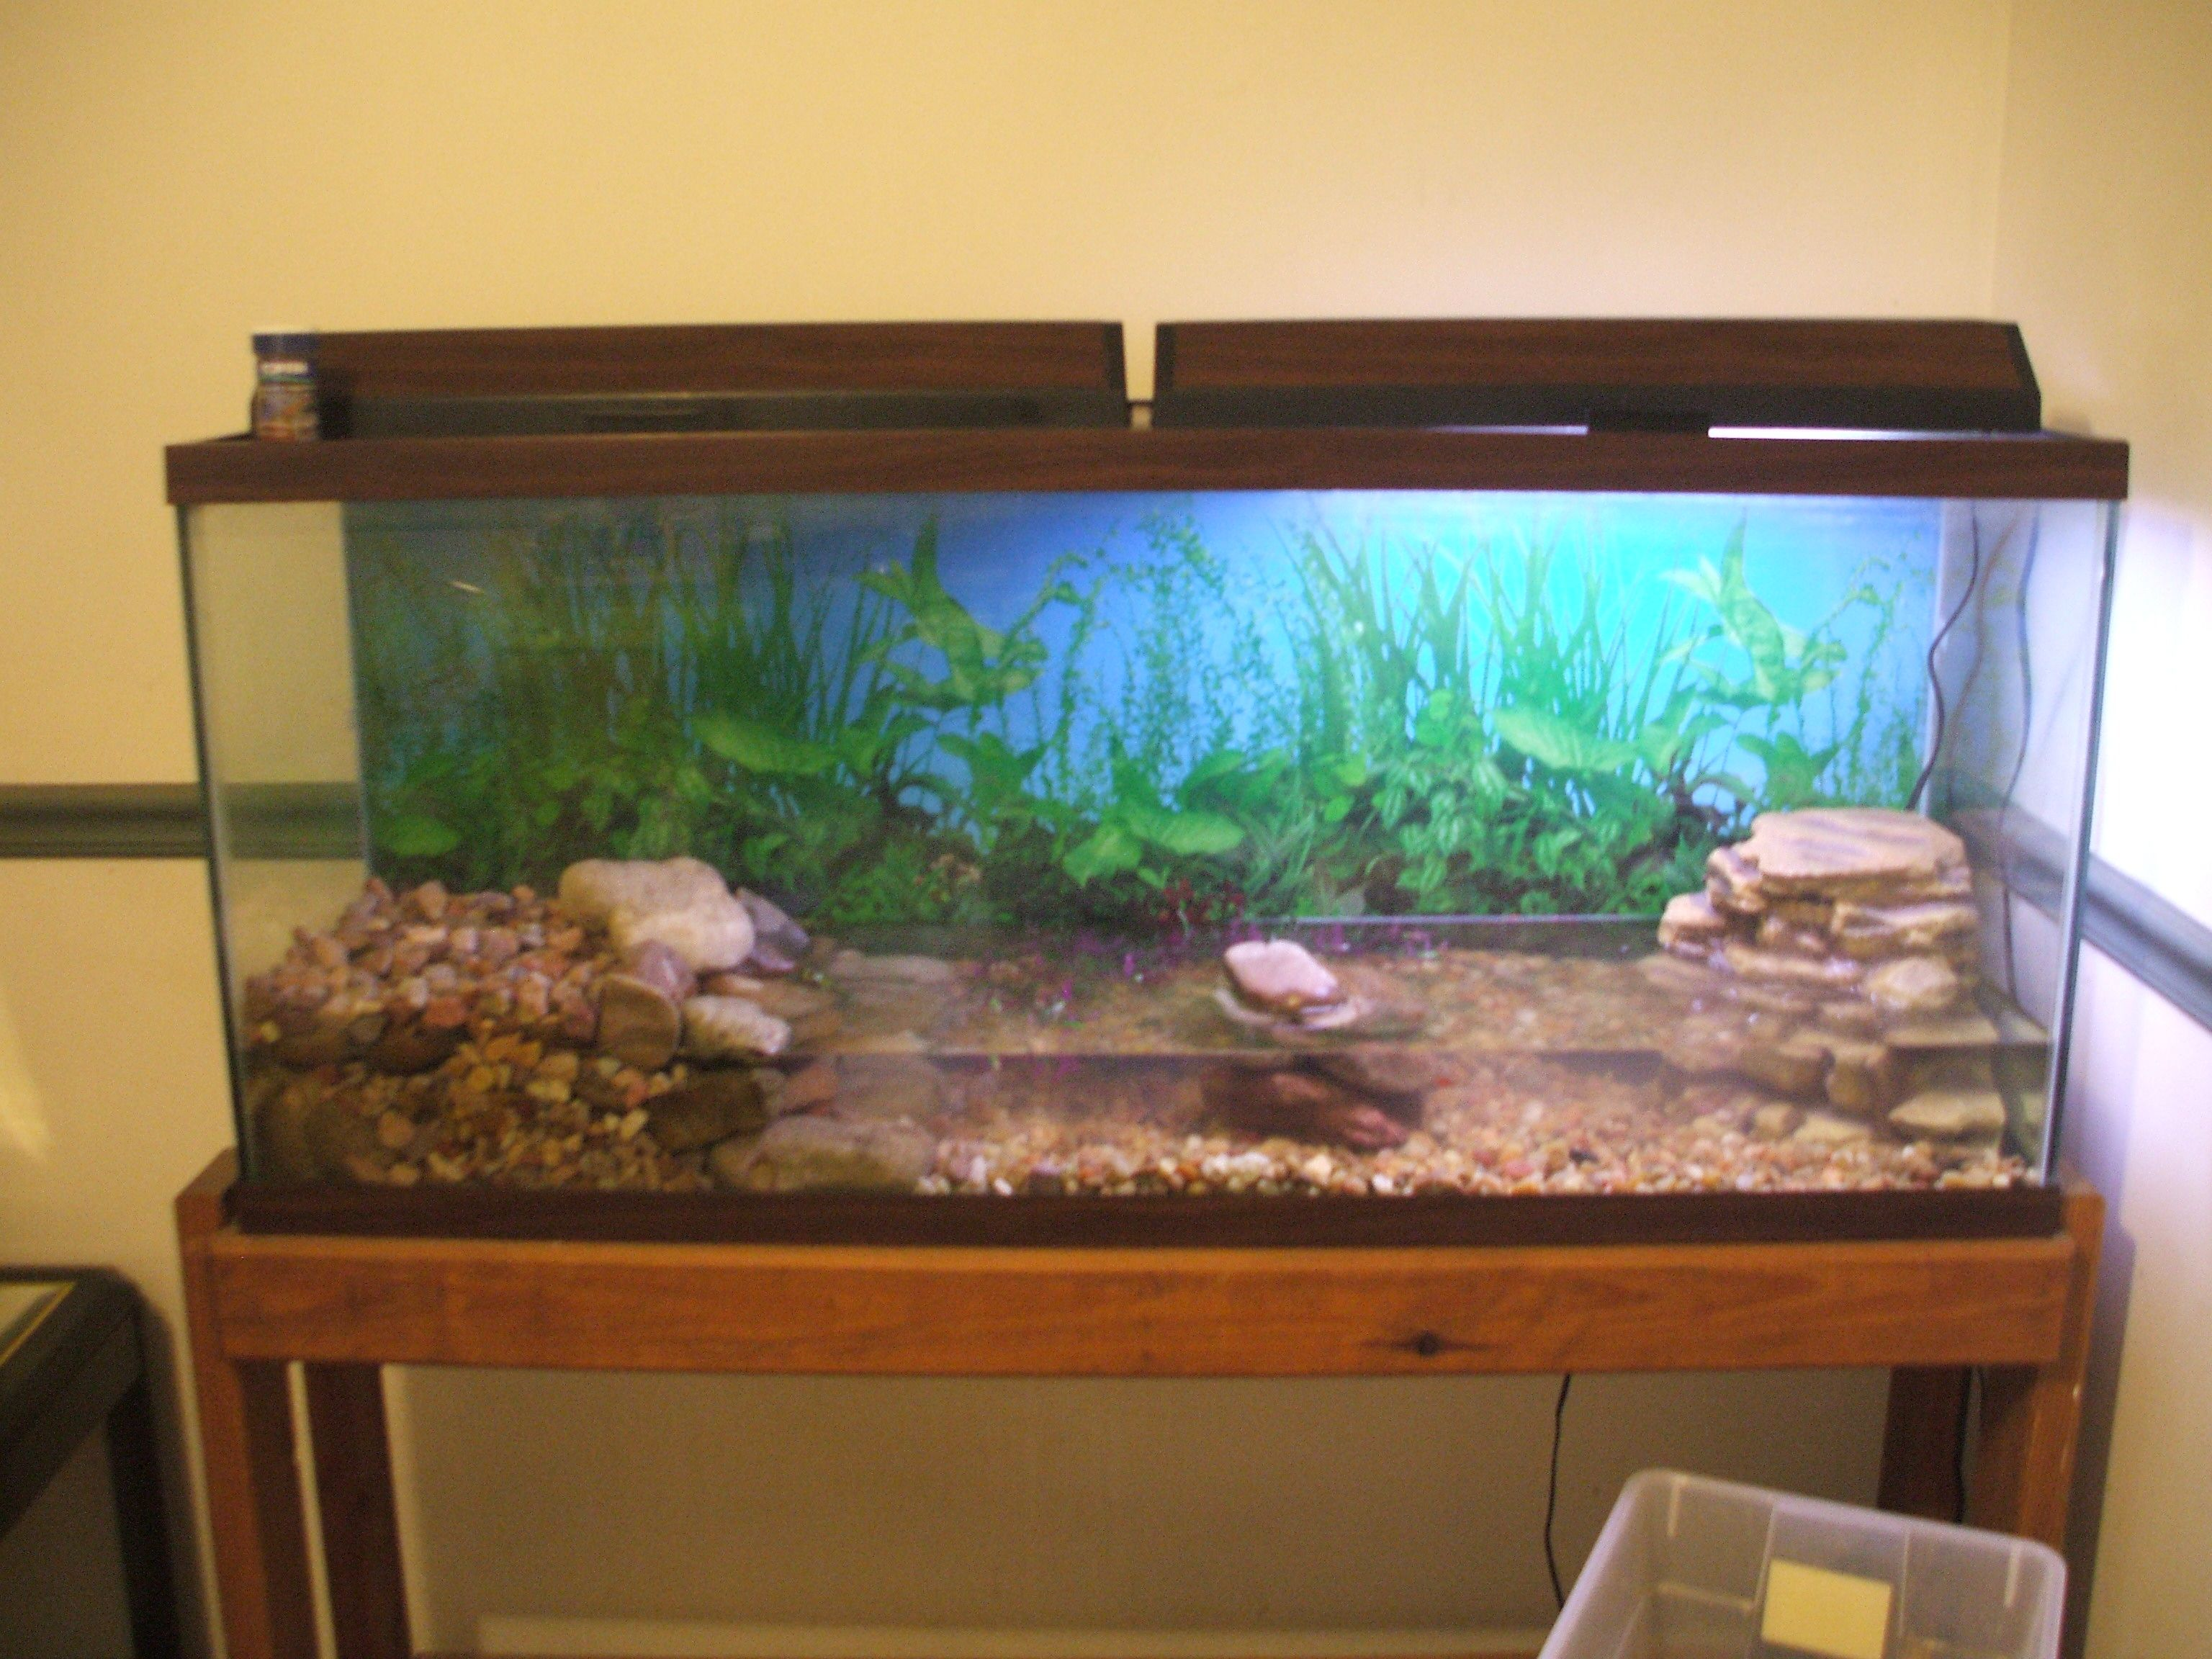 This is a 55 gallon tank that I have set up for amphibians It has 2